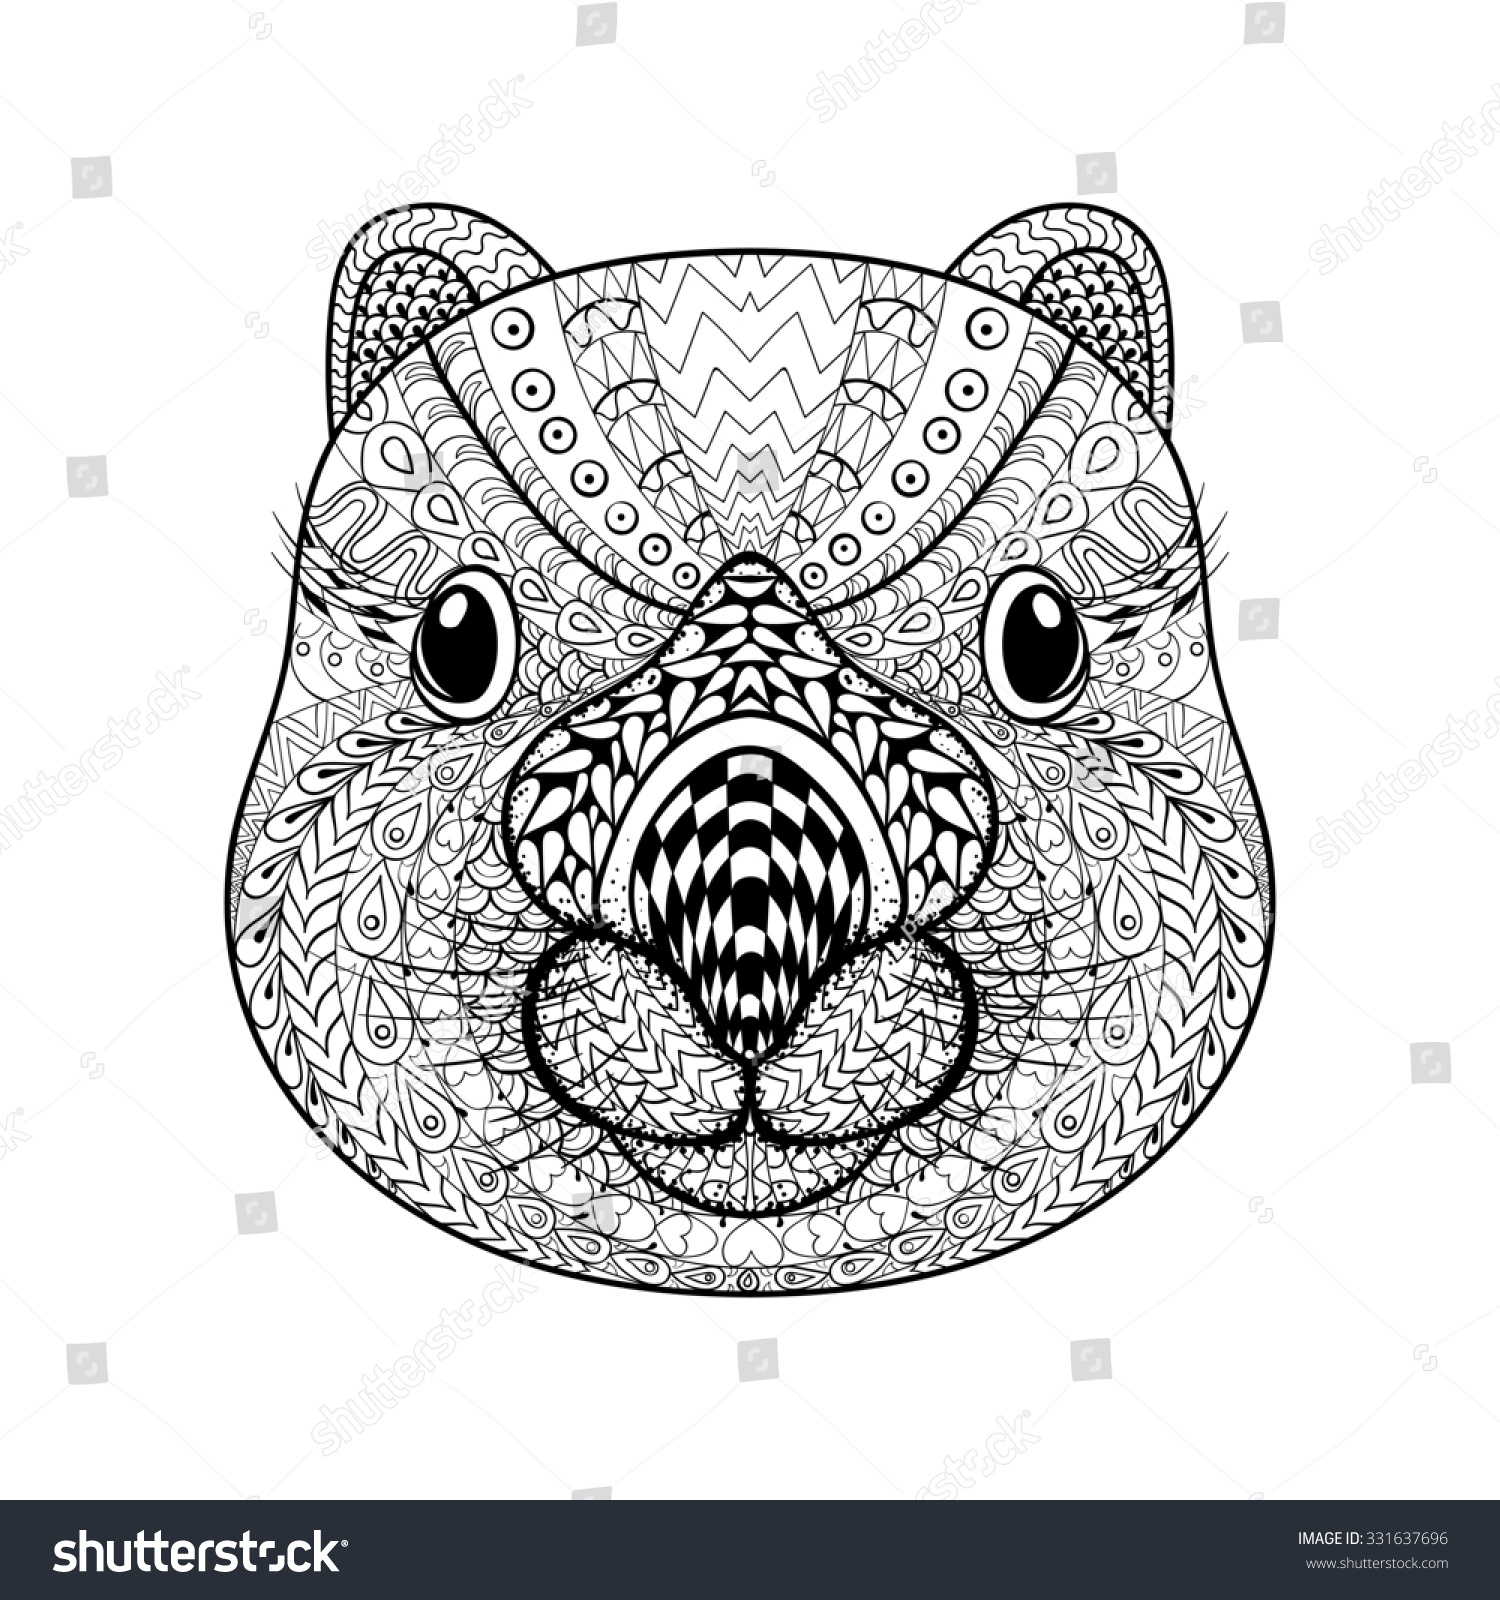 Coloring Pages Wombat Coloring Page hand drawn tribal wombat face animal stock illustration 331637696 totem for adult coloring page with high details isolated